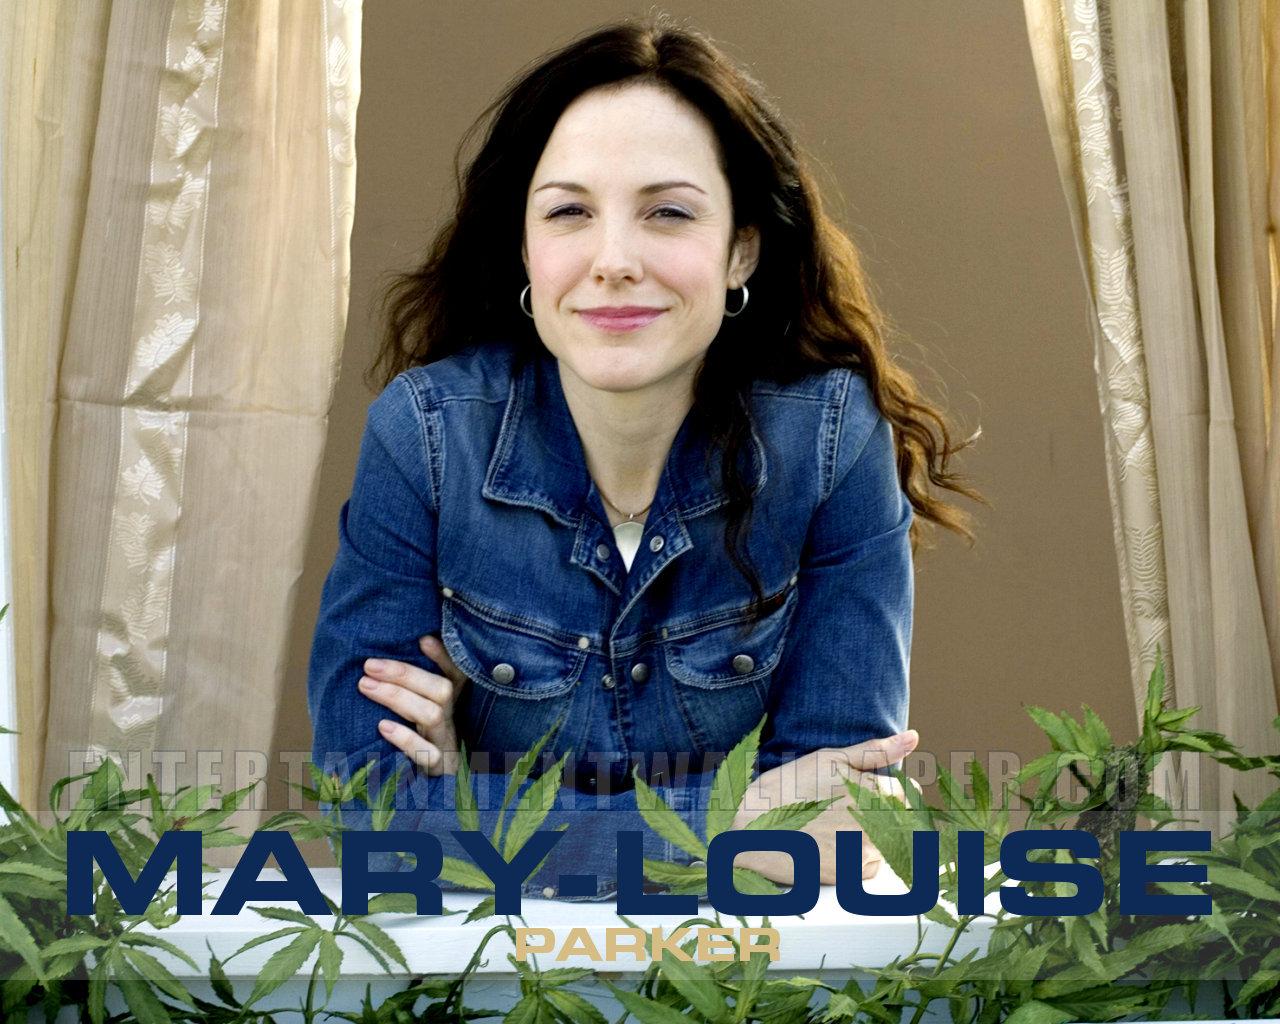 1280x1024 - Mary-Louise Parker Wallpapers 34